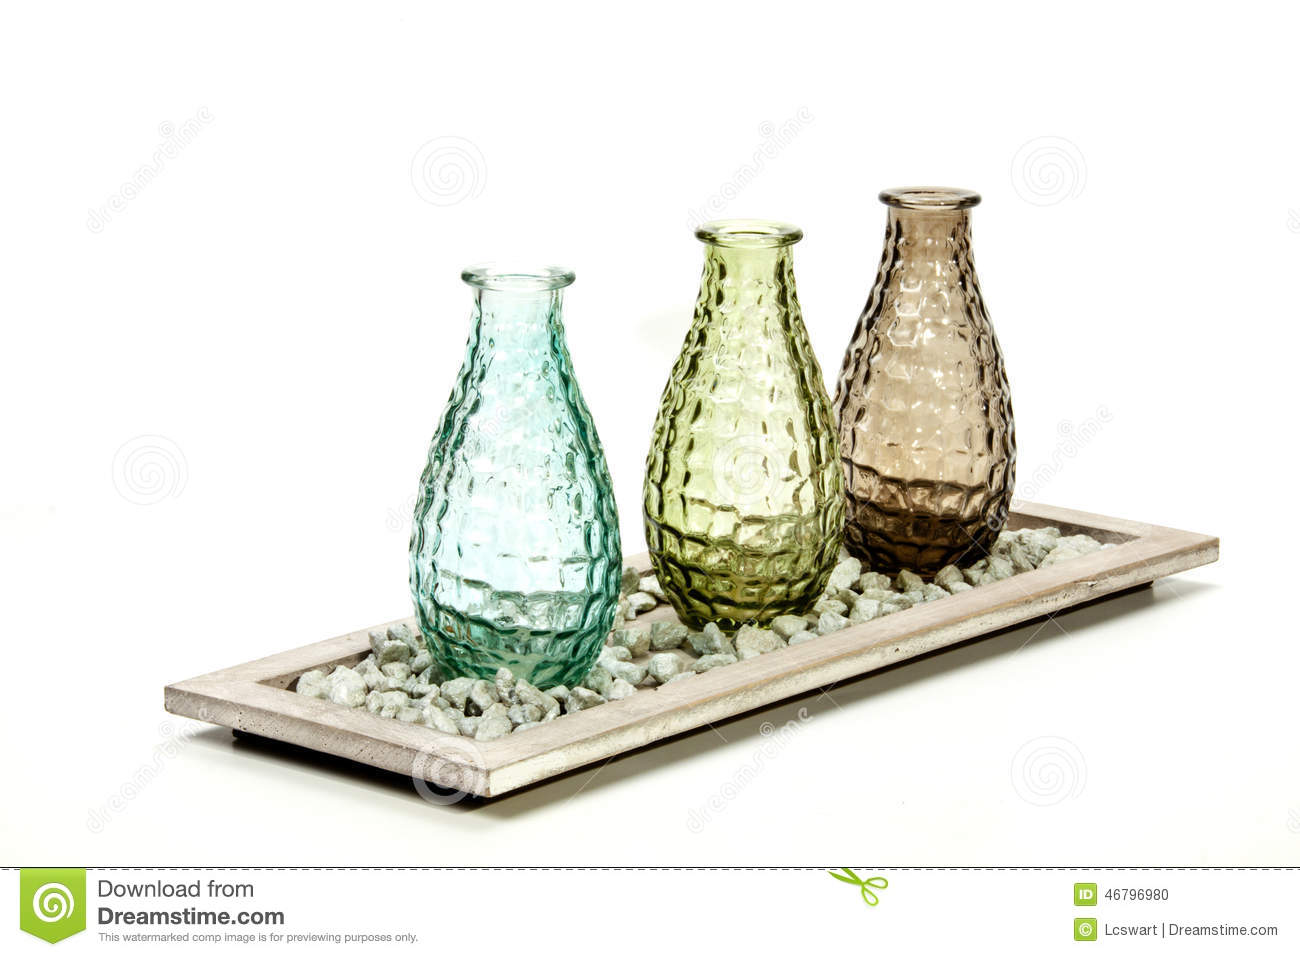 Three decorative glass vases on stand with pebbles